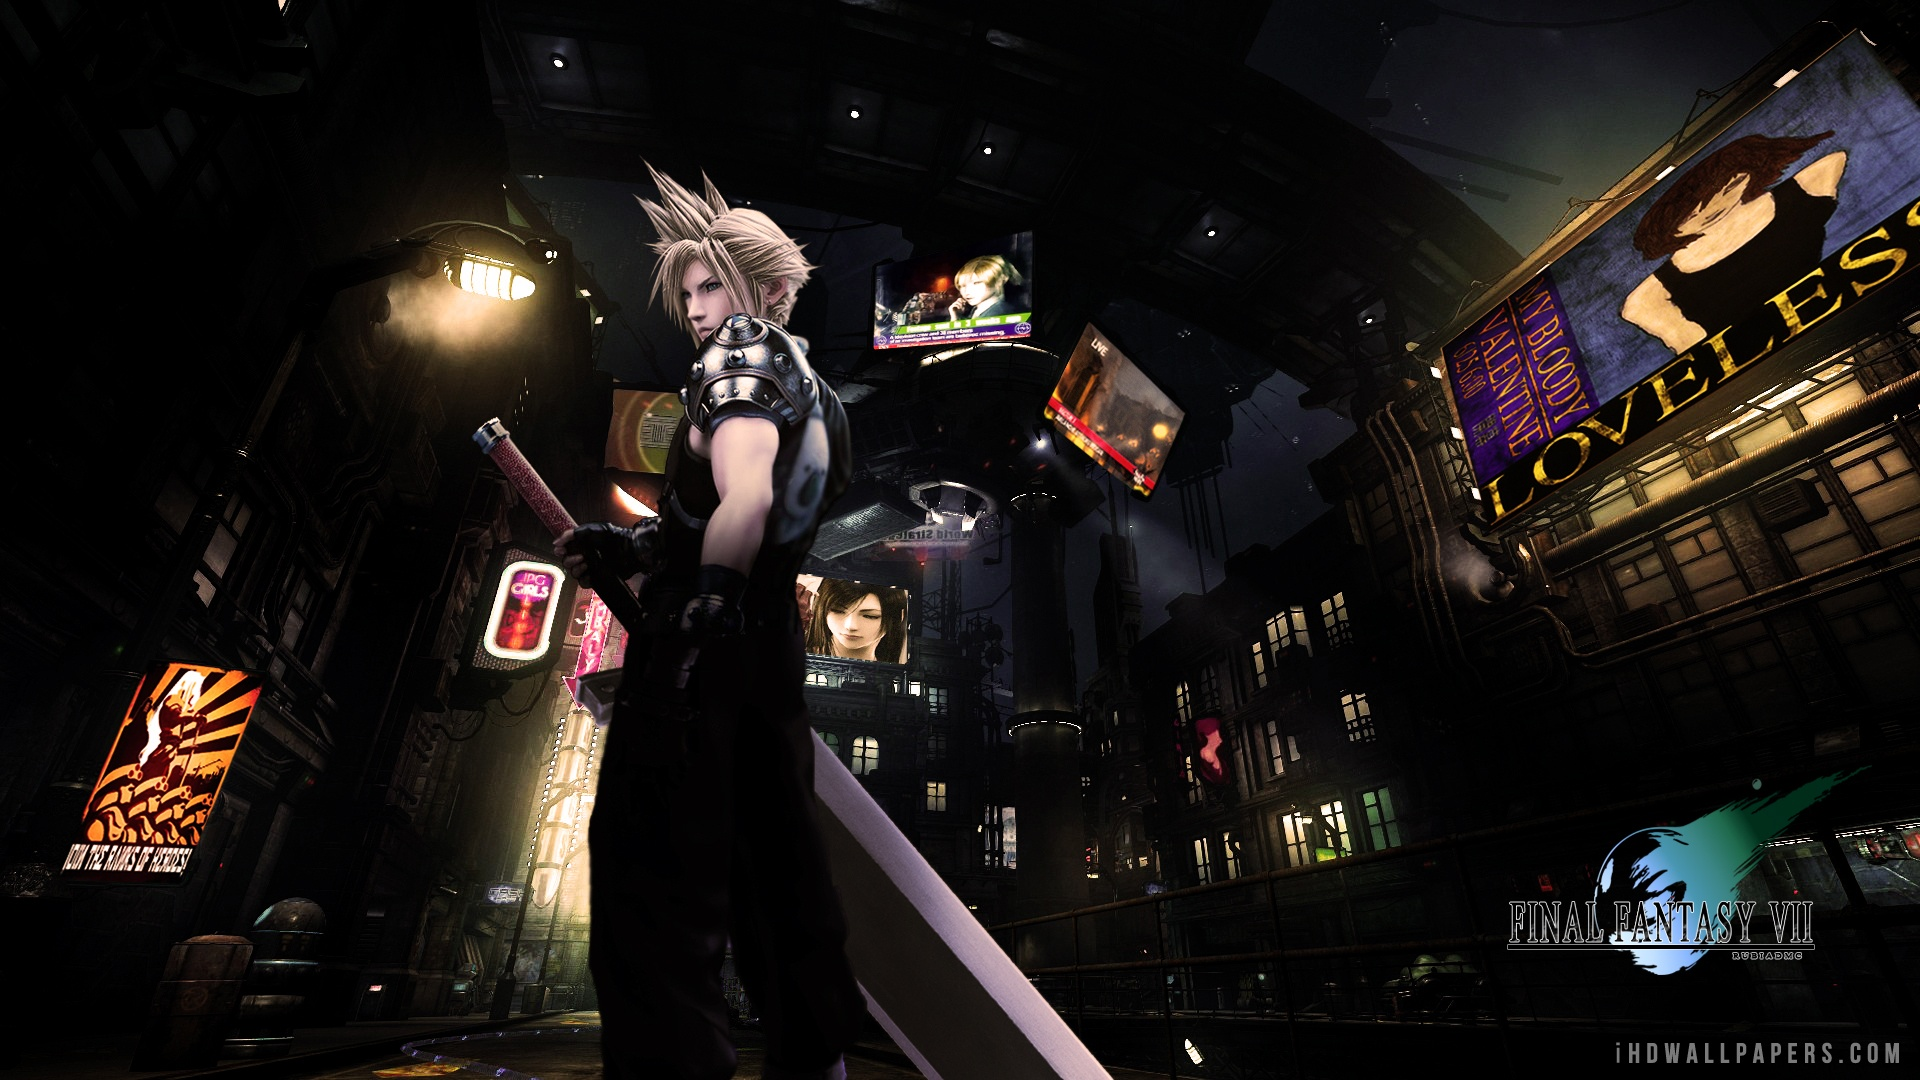 Free Download Final Fantasy Vii Hd Wallpaper Ihd Wallpapers